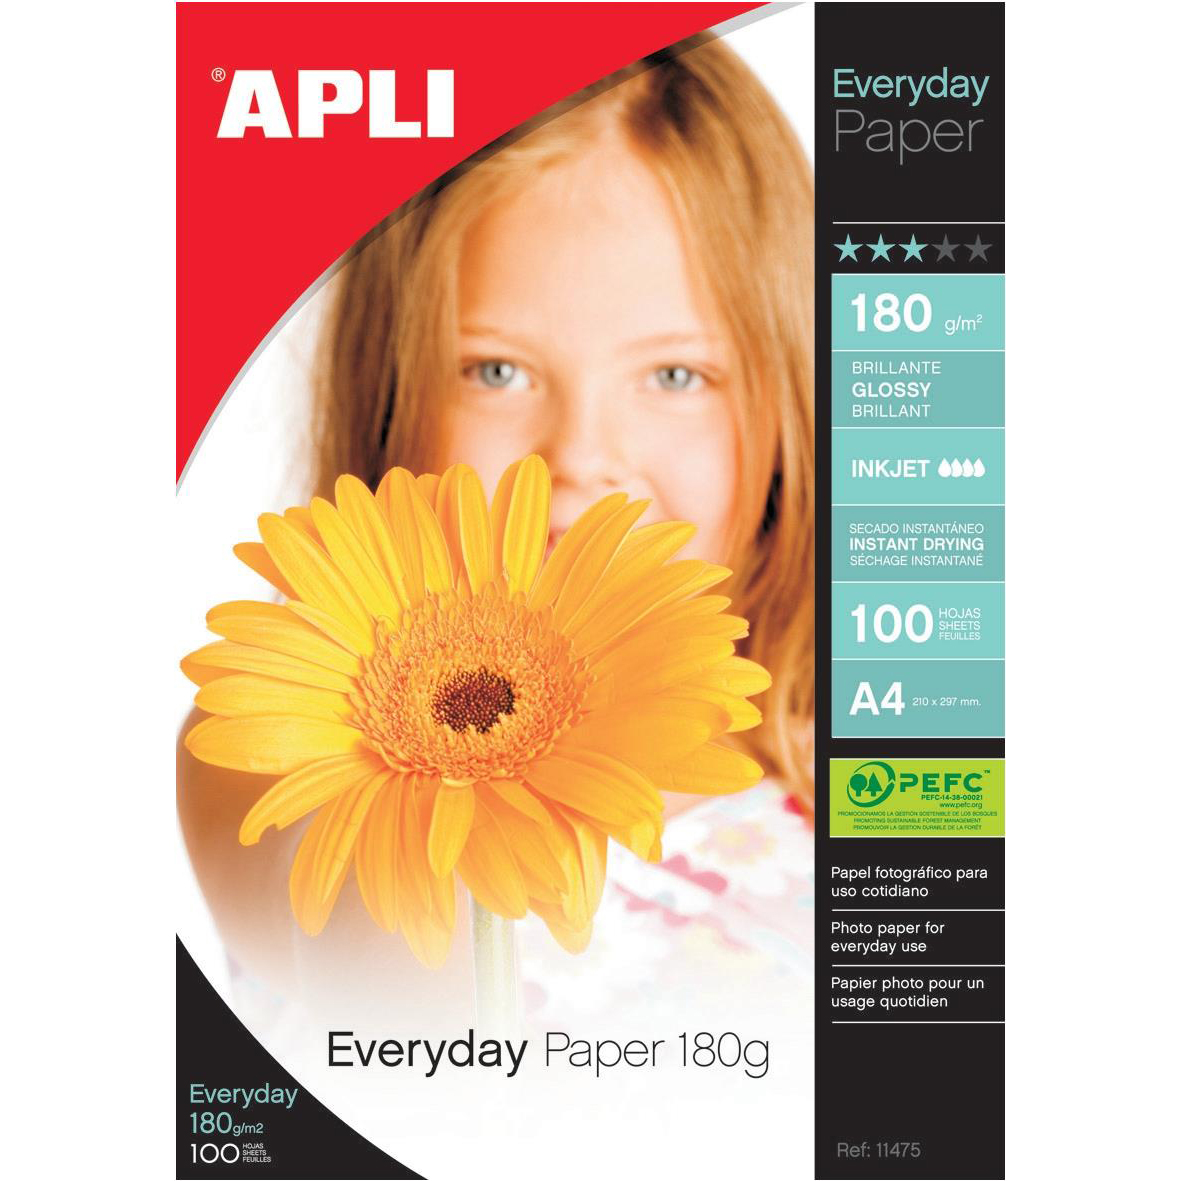 Apli Everyday Paper Glossy 180gsm A4 Ref 11475 100 Sheets